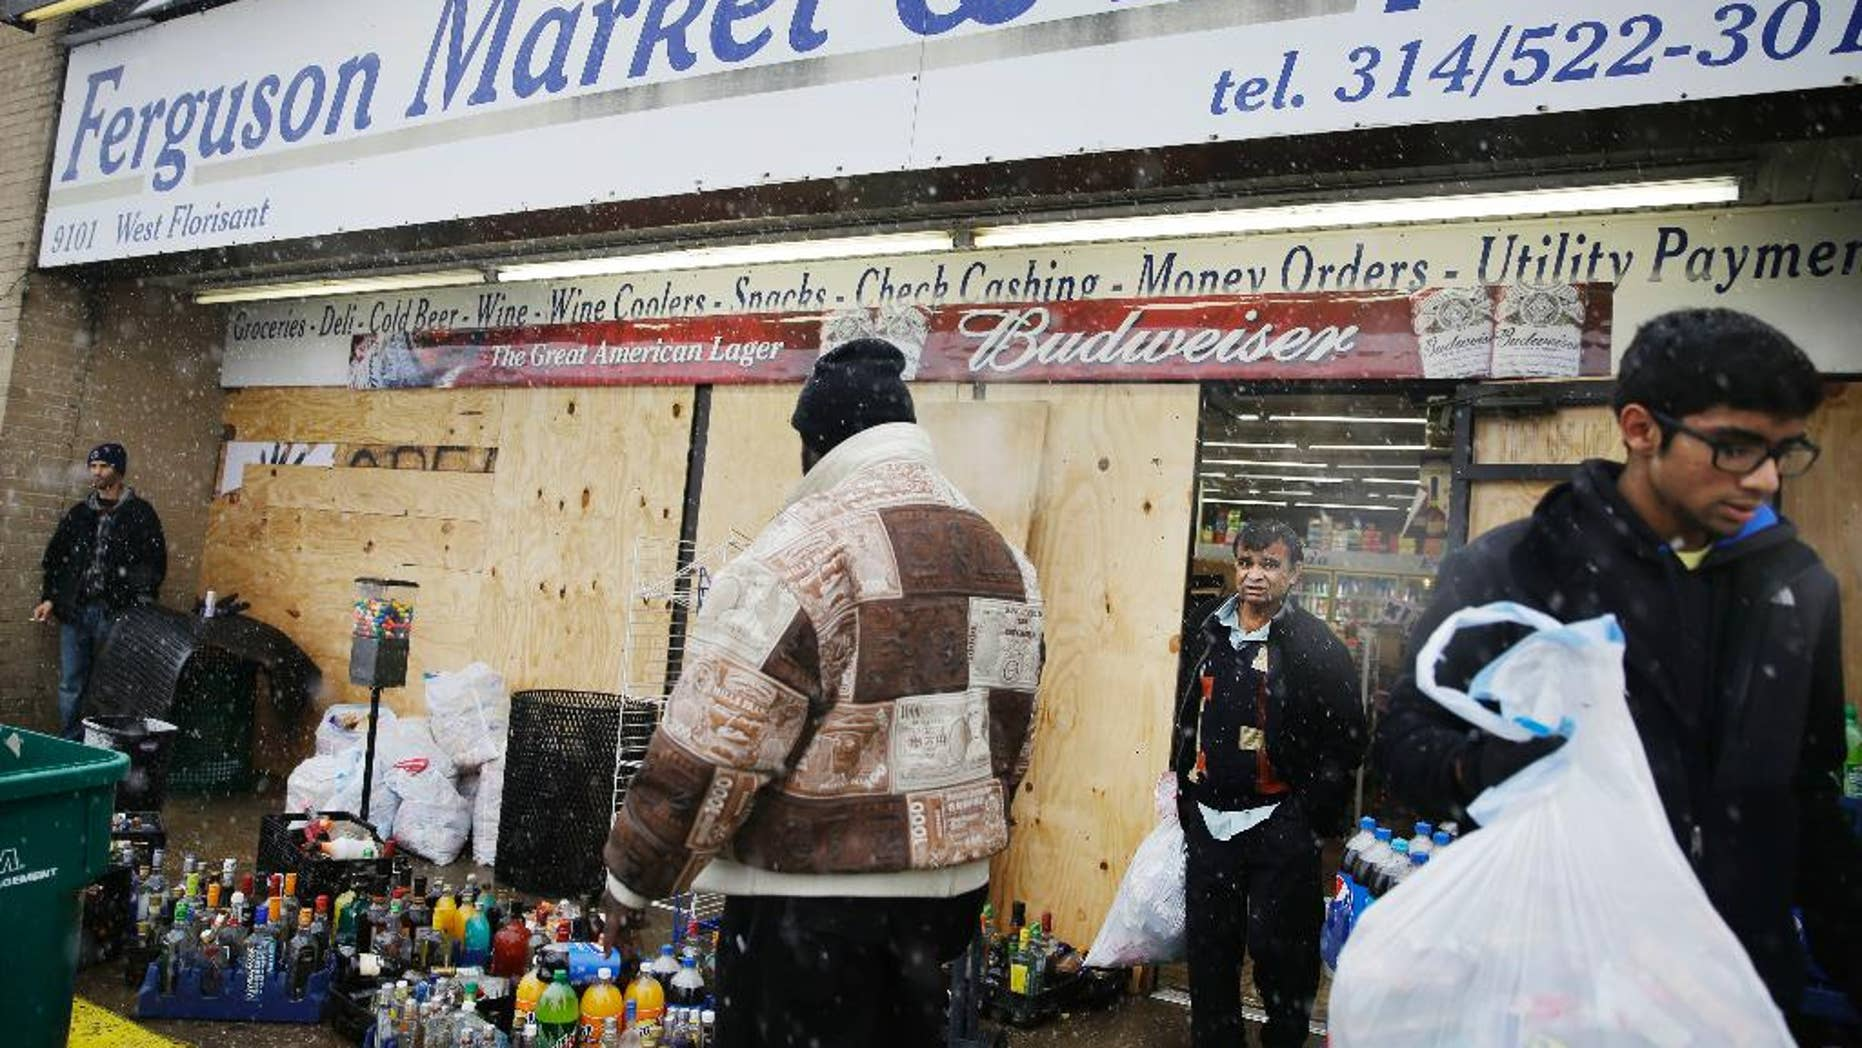 FILE - In this Wednesday, Nov. 26, 2014, file photo, Kush Patel, right, carries out bags of merchandise while helping his uncle Andy Patel, rear, clean up the looting damage from Monday's riots at his store, Ferguson Market and Liquor, in Ferguson, Mo. The store is disputing a new documentary's claims that surveillance video suggests Michael Brown didn't rob the store before he was fatally shot by police in Ferguson. One of the filmmakers said he believes the footage shows Brown trading marijuana for a bag of cigarillos early on Aug. 9, 2014, and that Brown intended to come back later for the cigarillos. Store officials said no drug transaction took place and Brown stole the cigarillos while at the store later that day. (AP Photo/David Goldman, File)